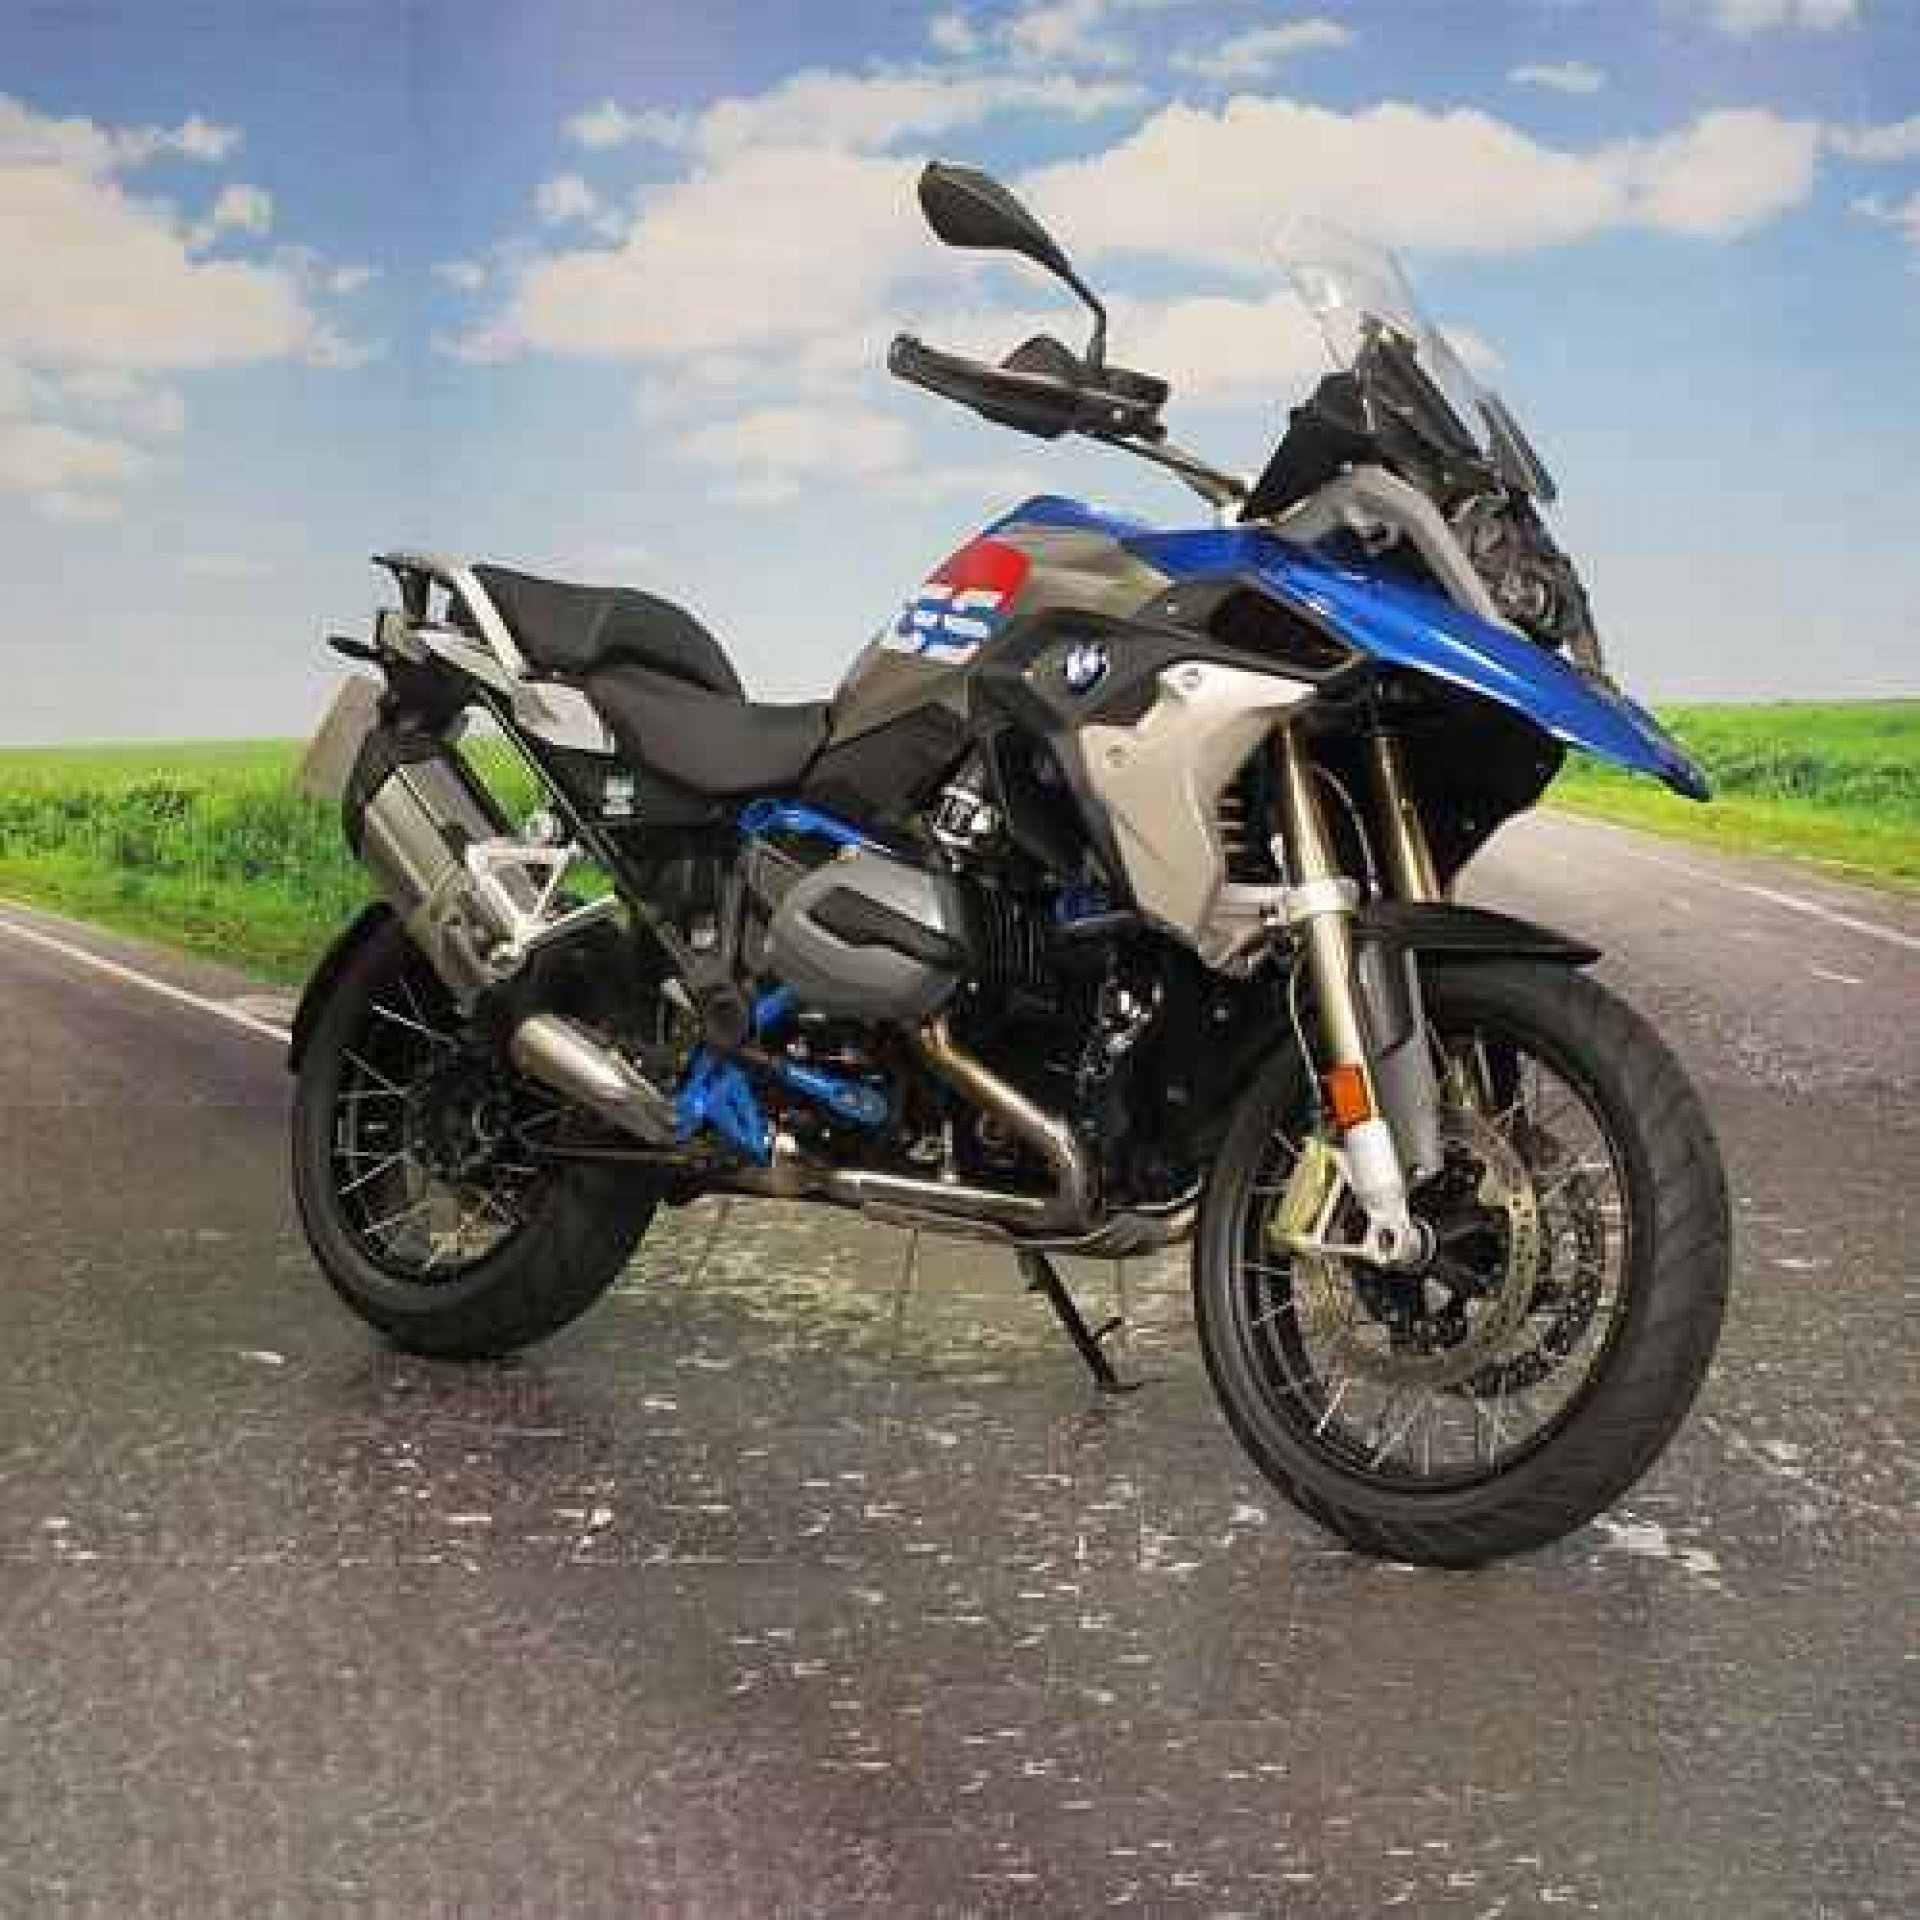 Buy Used Motorcycles >> Motorcycle Dealer Used And New Bikes For Sale Clothing